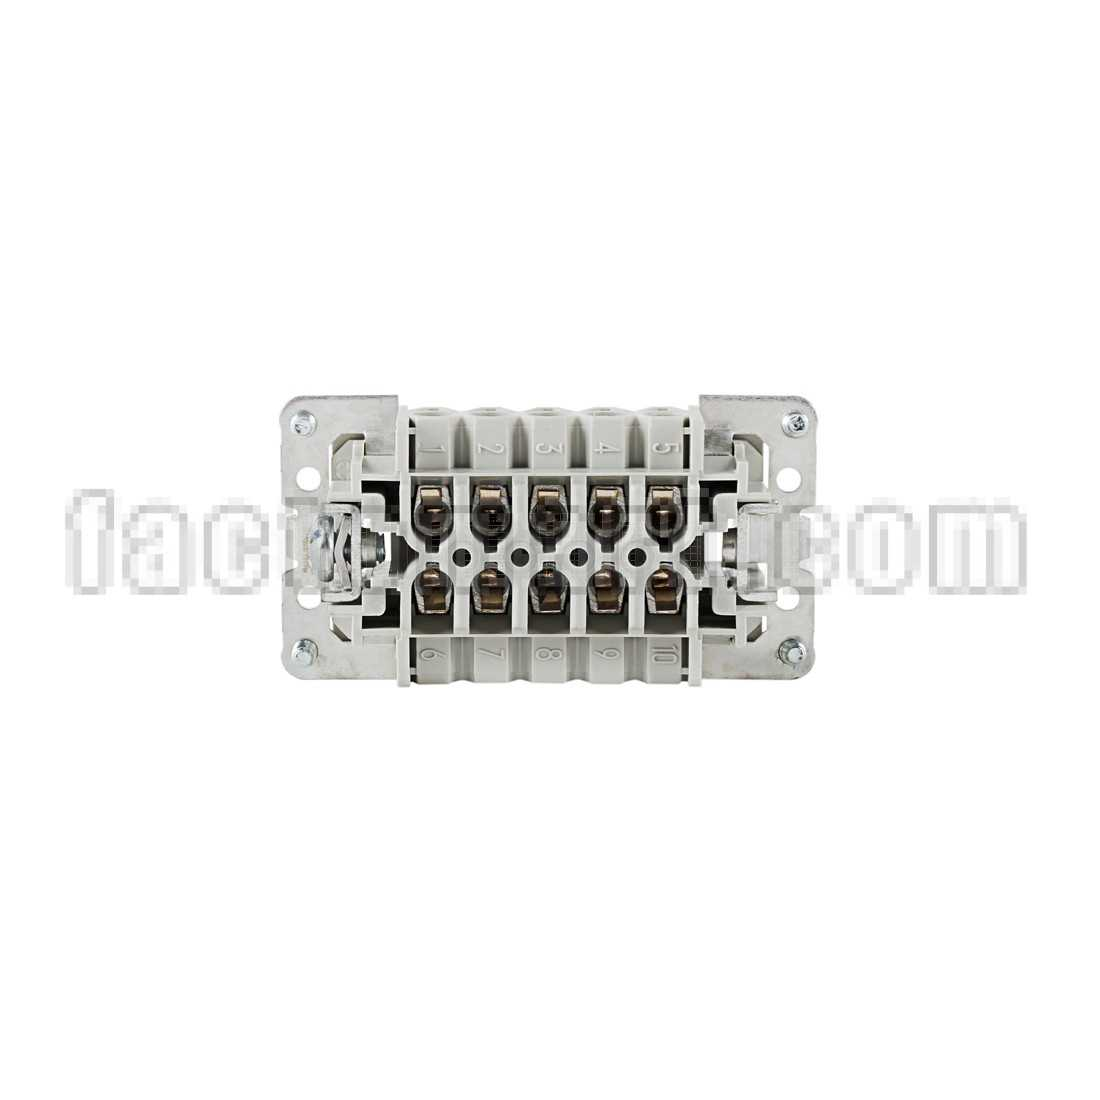 Multipole connector WIELAND 70.310.1040.0 1